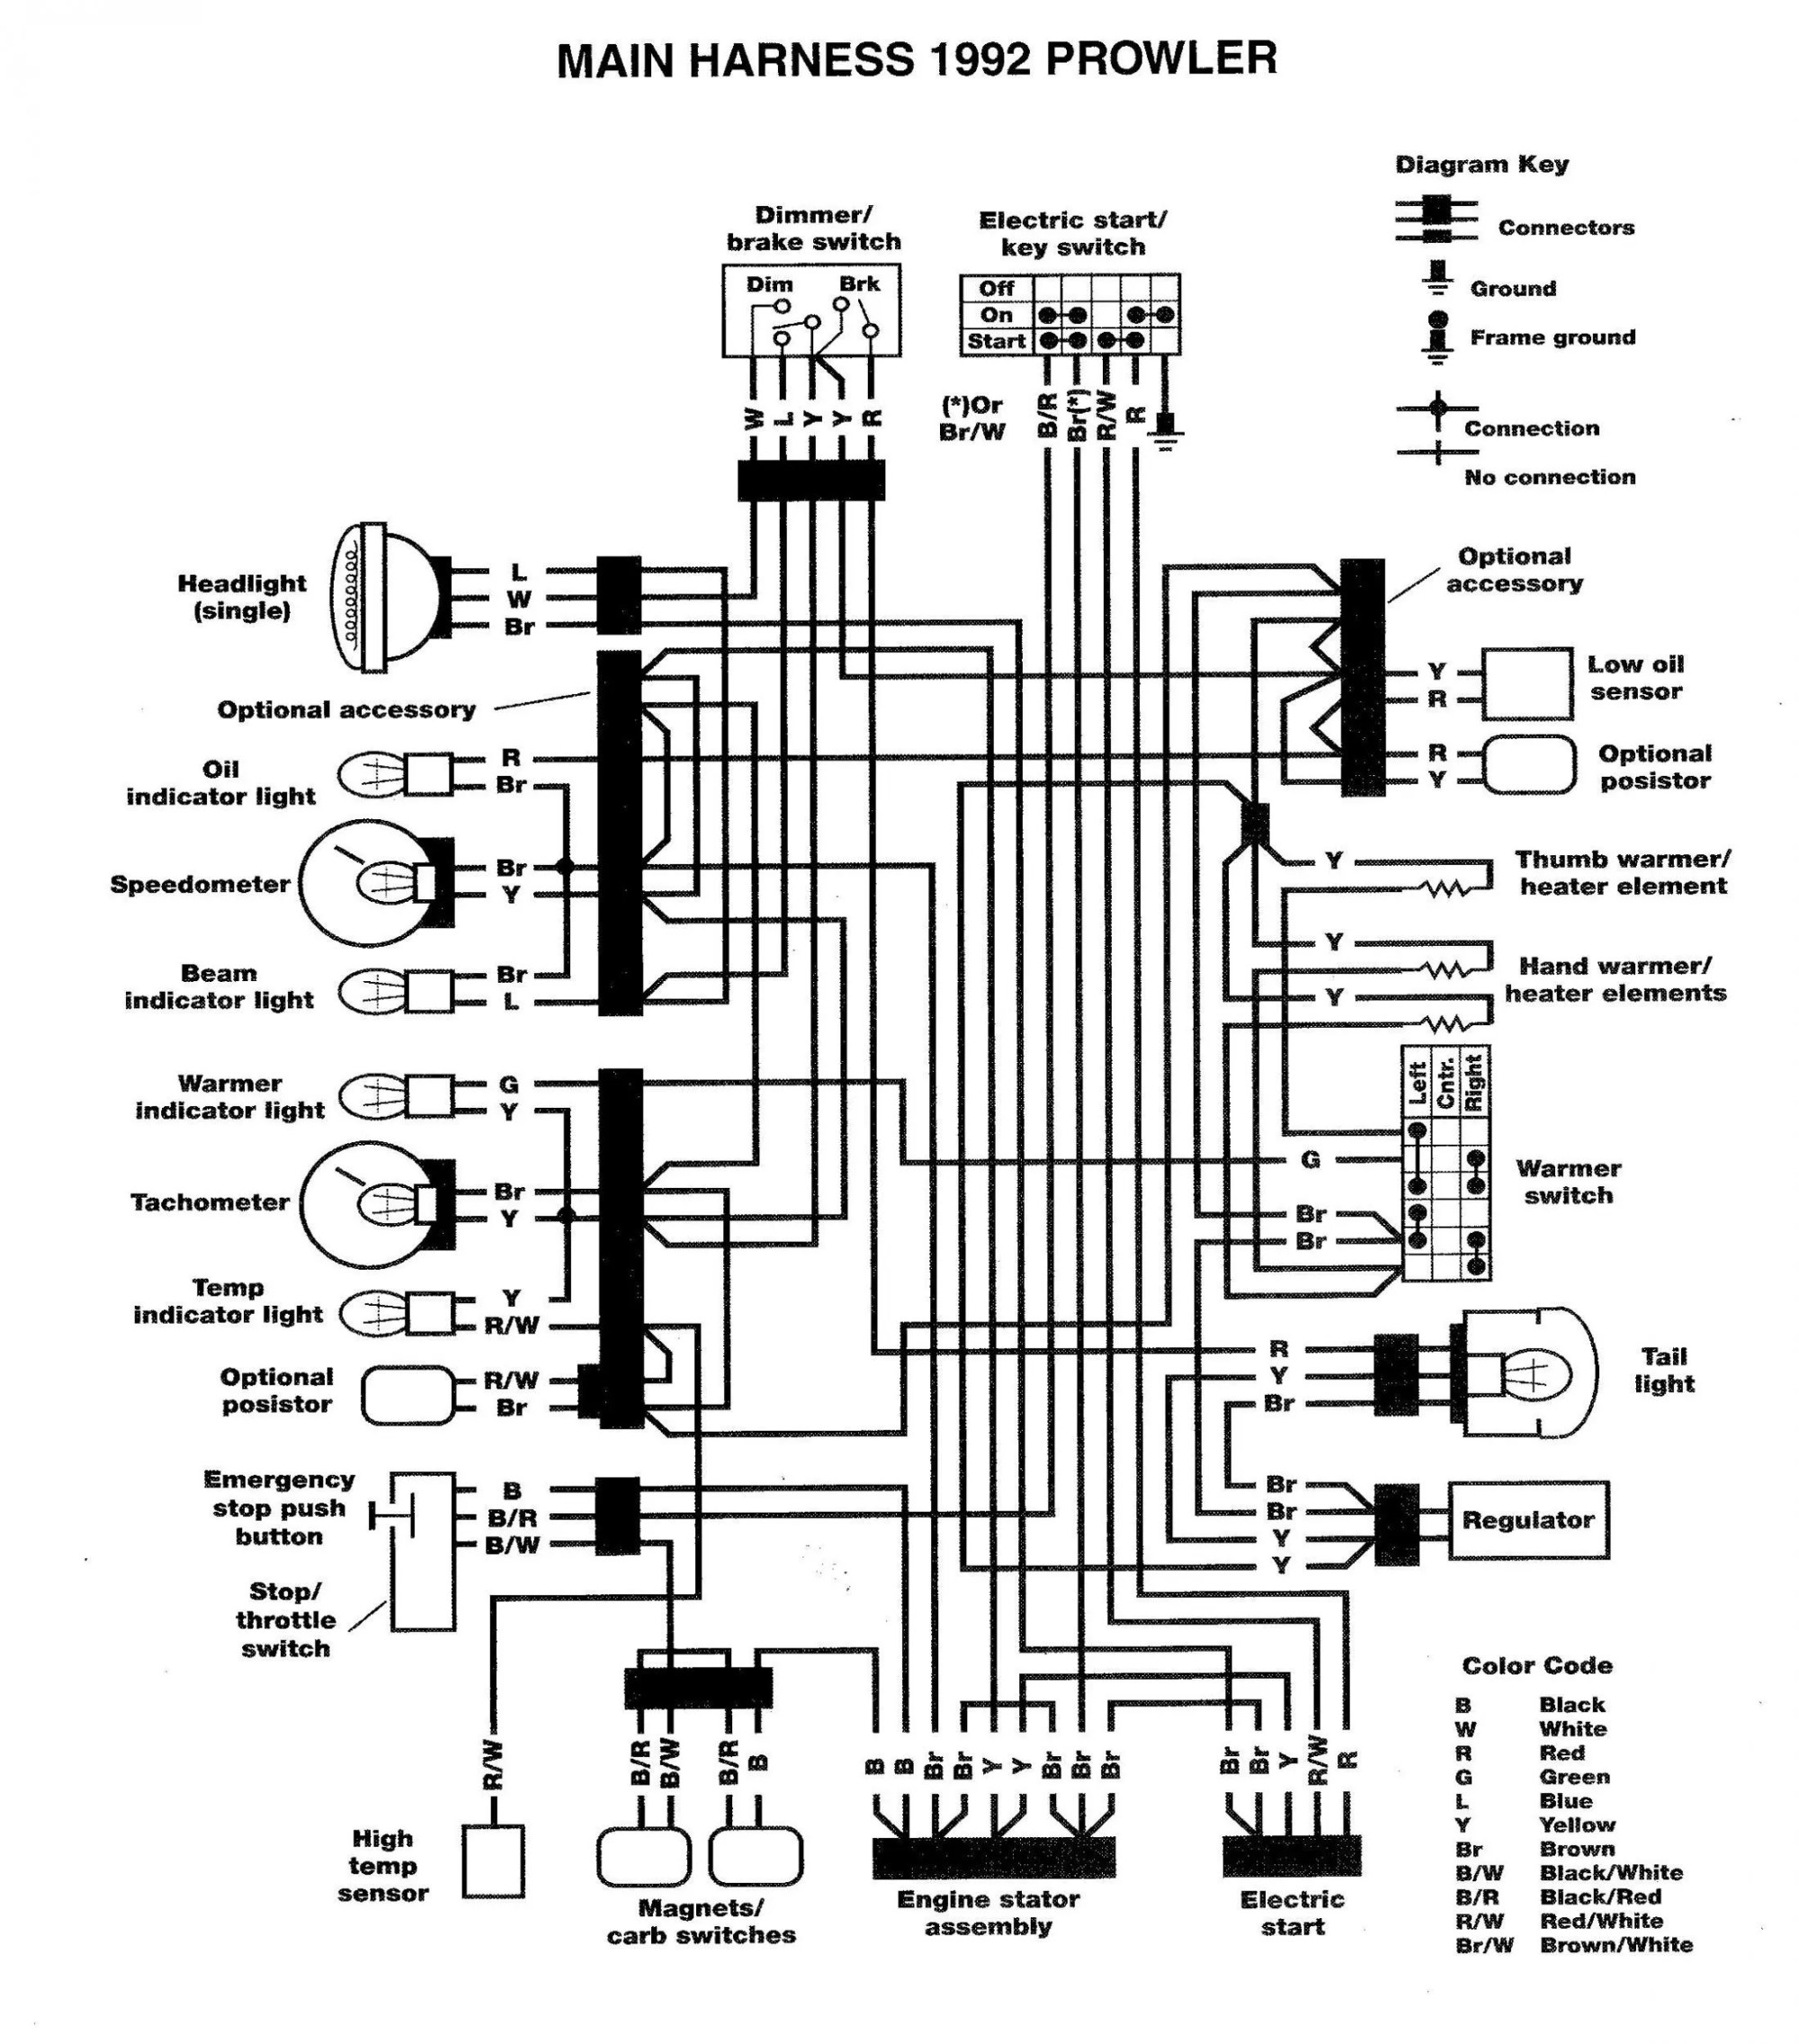 hight resolution of de tomaso pantera wiring diagram simple wiring diagram schema jimmy page wiring diagram detomaso pantera wiring diagram